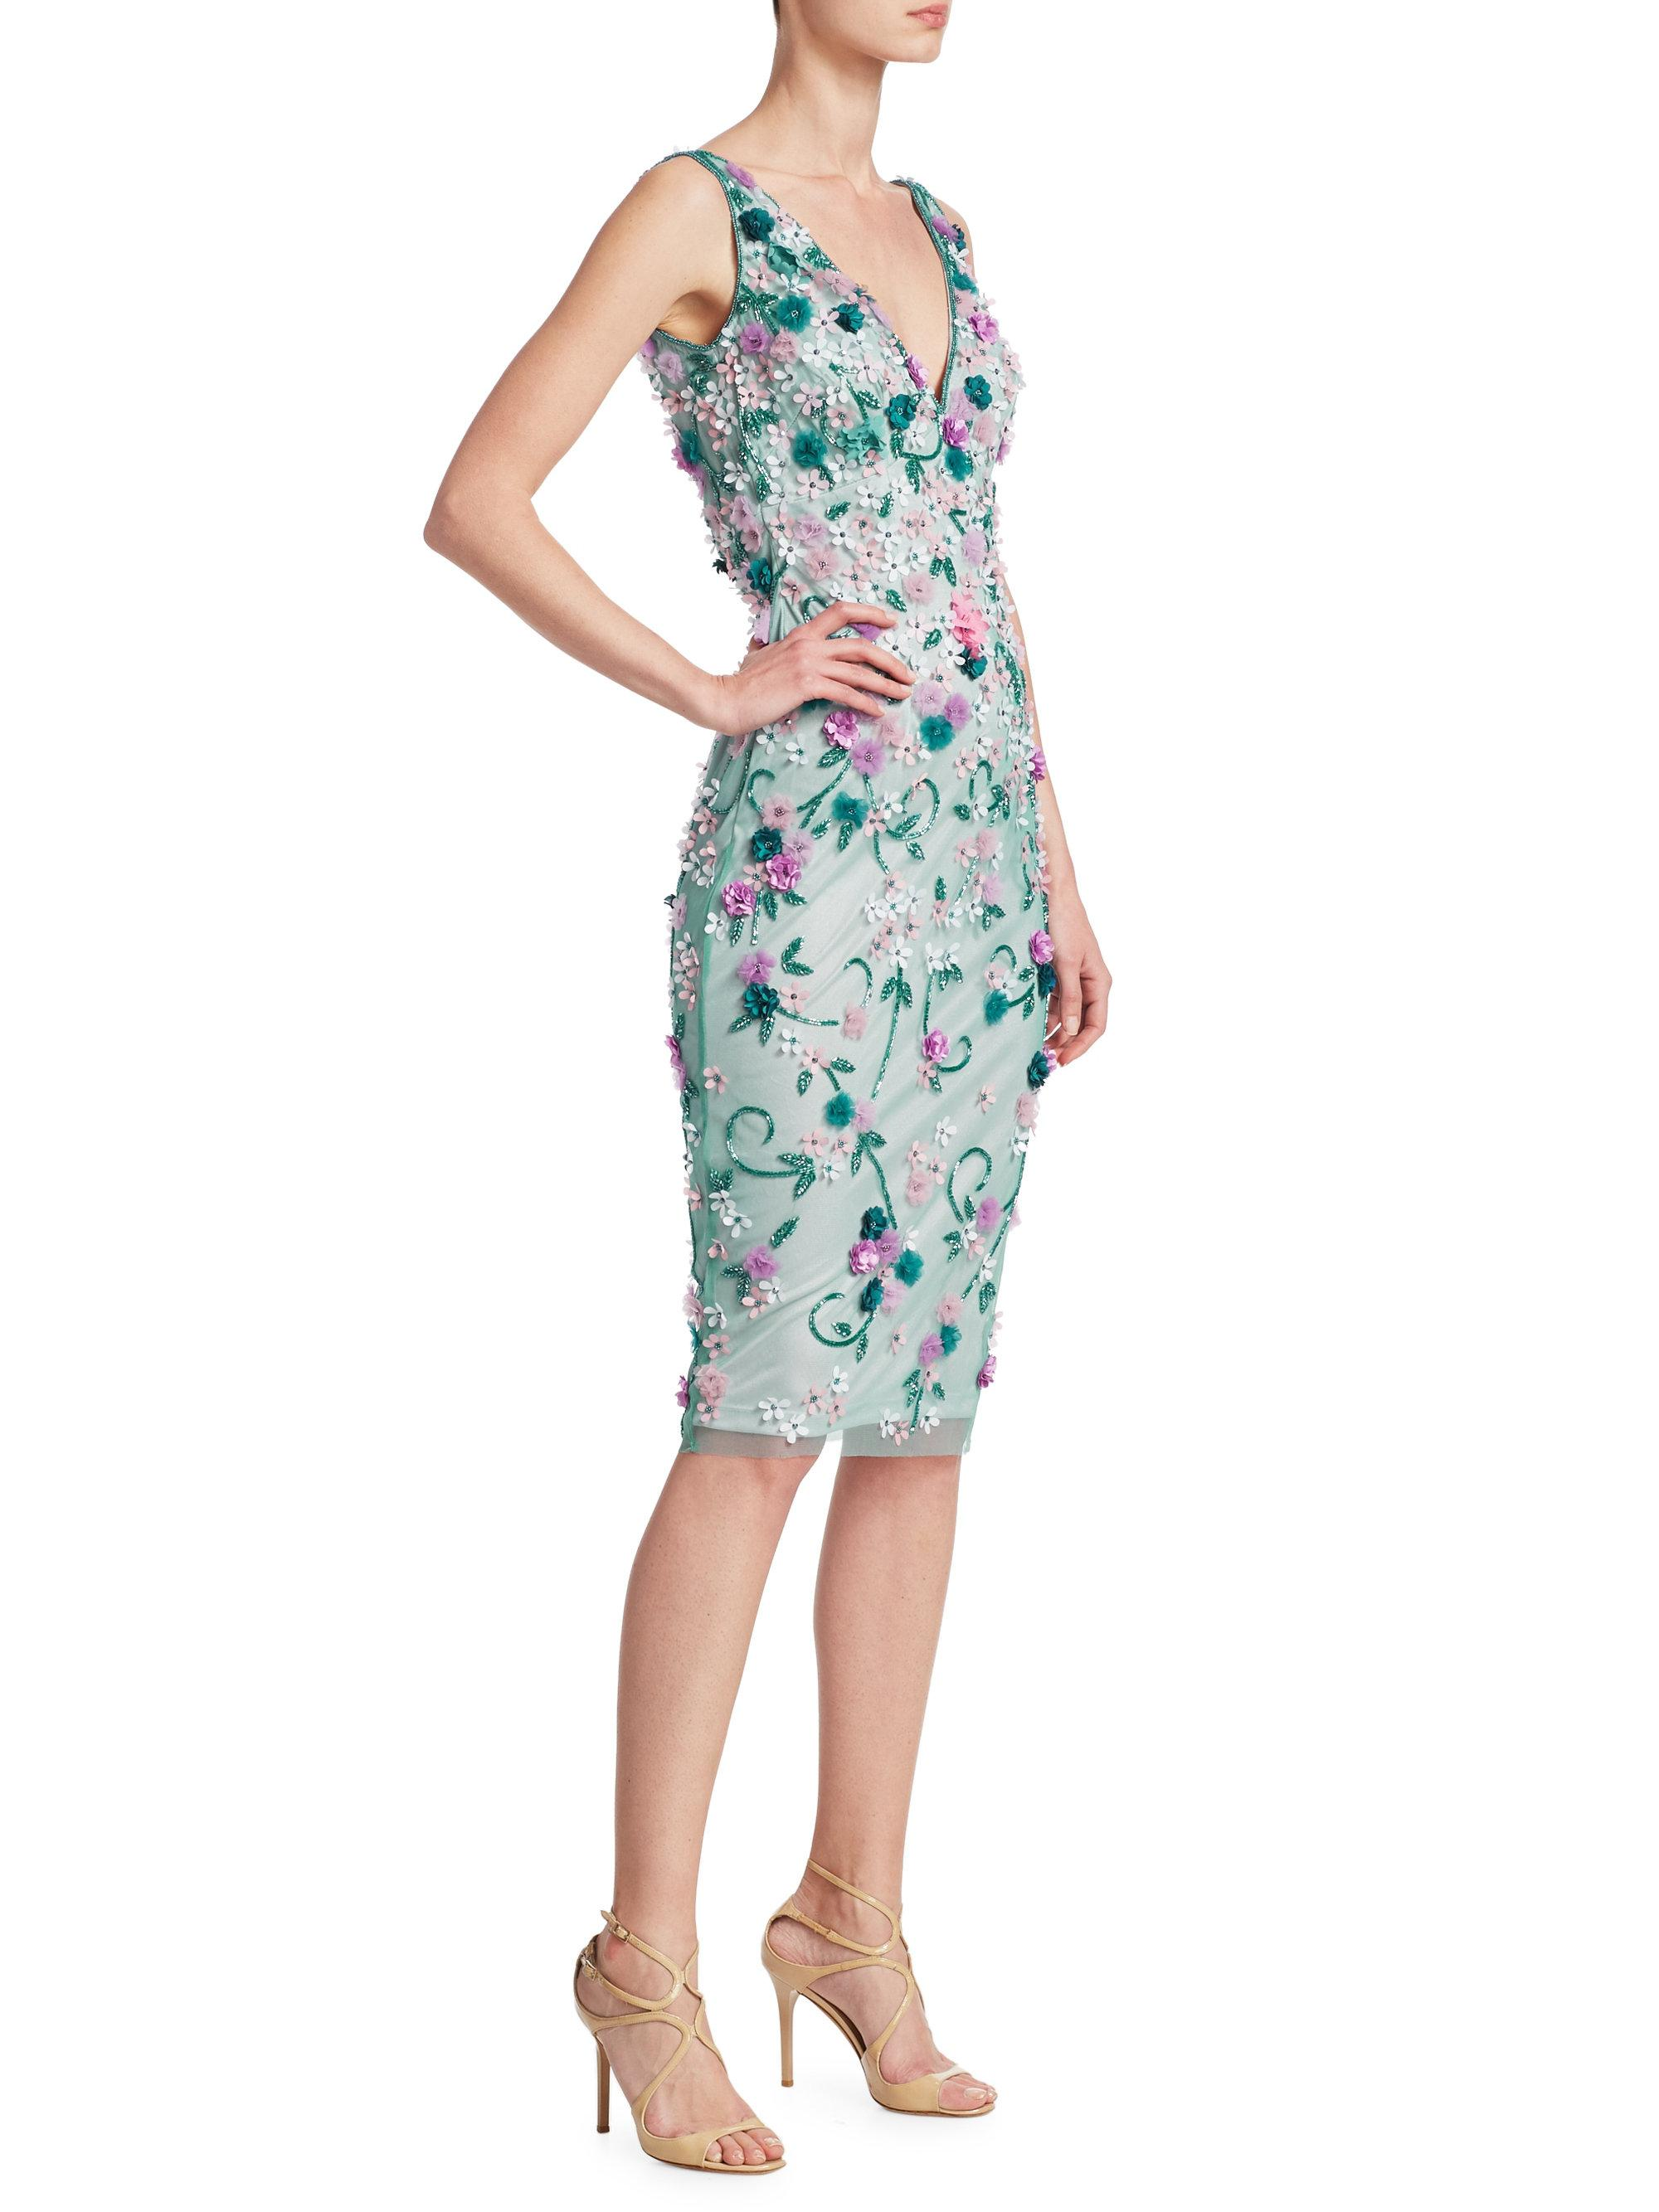 Lyst - Theia Embellished Cocktail Dress in Green